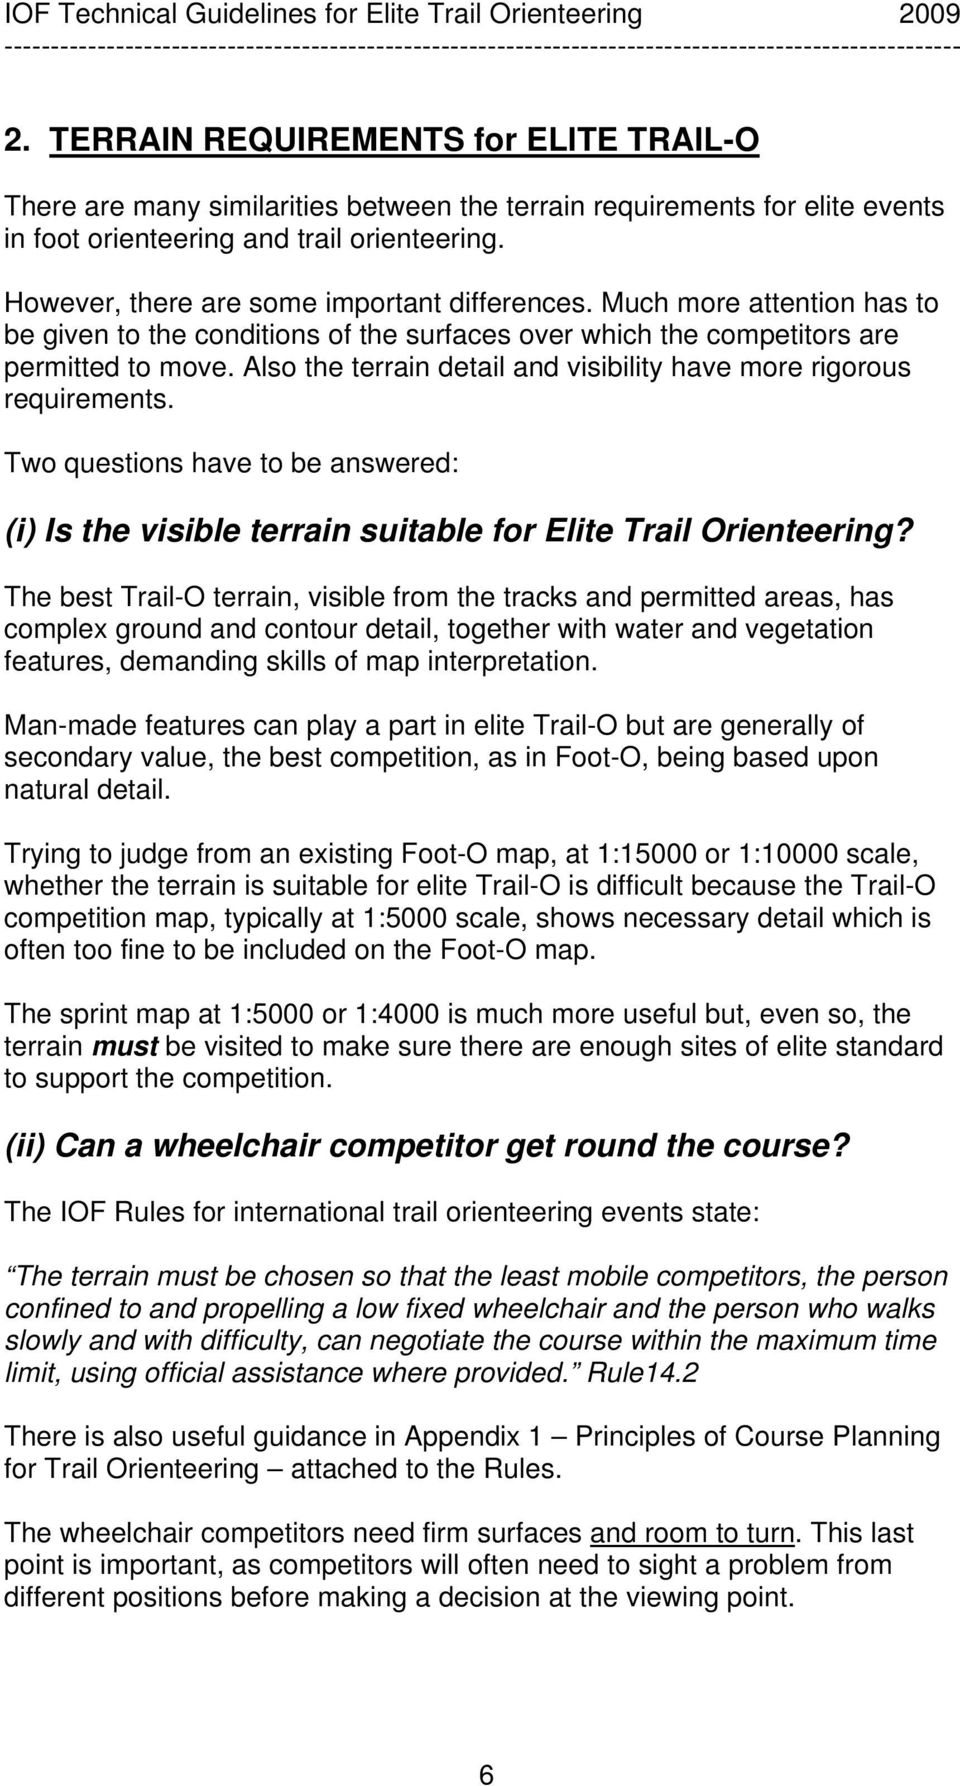 Also the terrain detail and visibility have more rigorous requirements. Two questions have to be answered: (i) Is the visible terrain suitable for Elite Trail Orienteering?